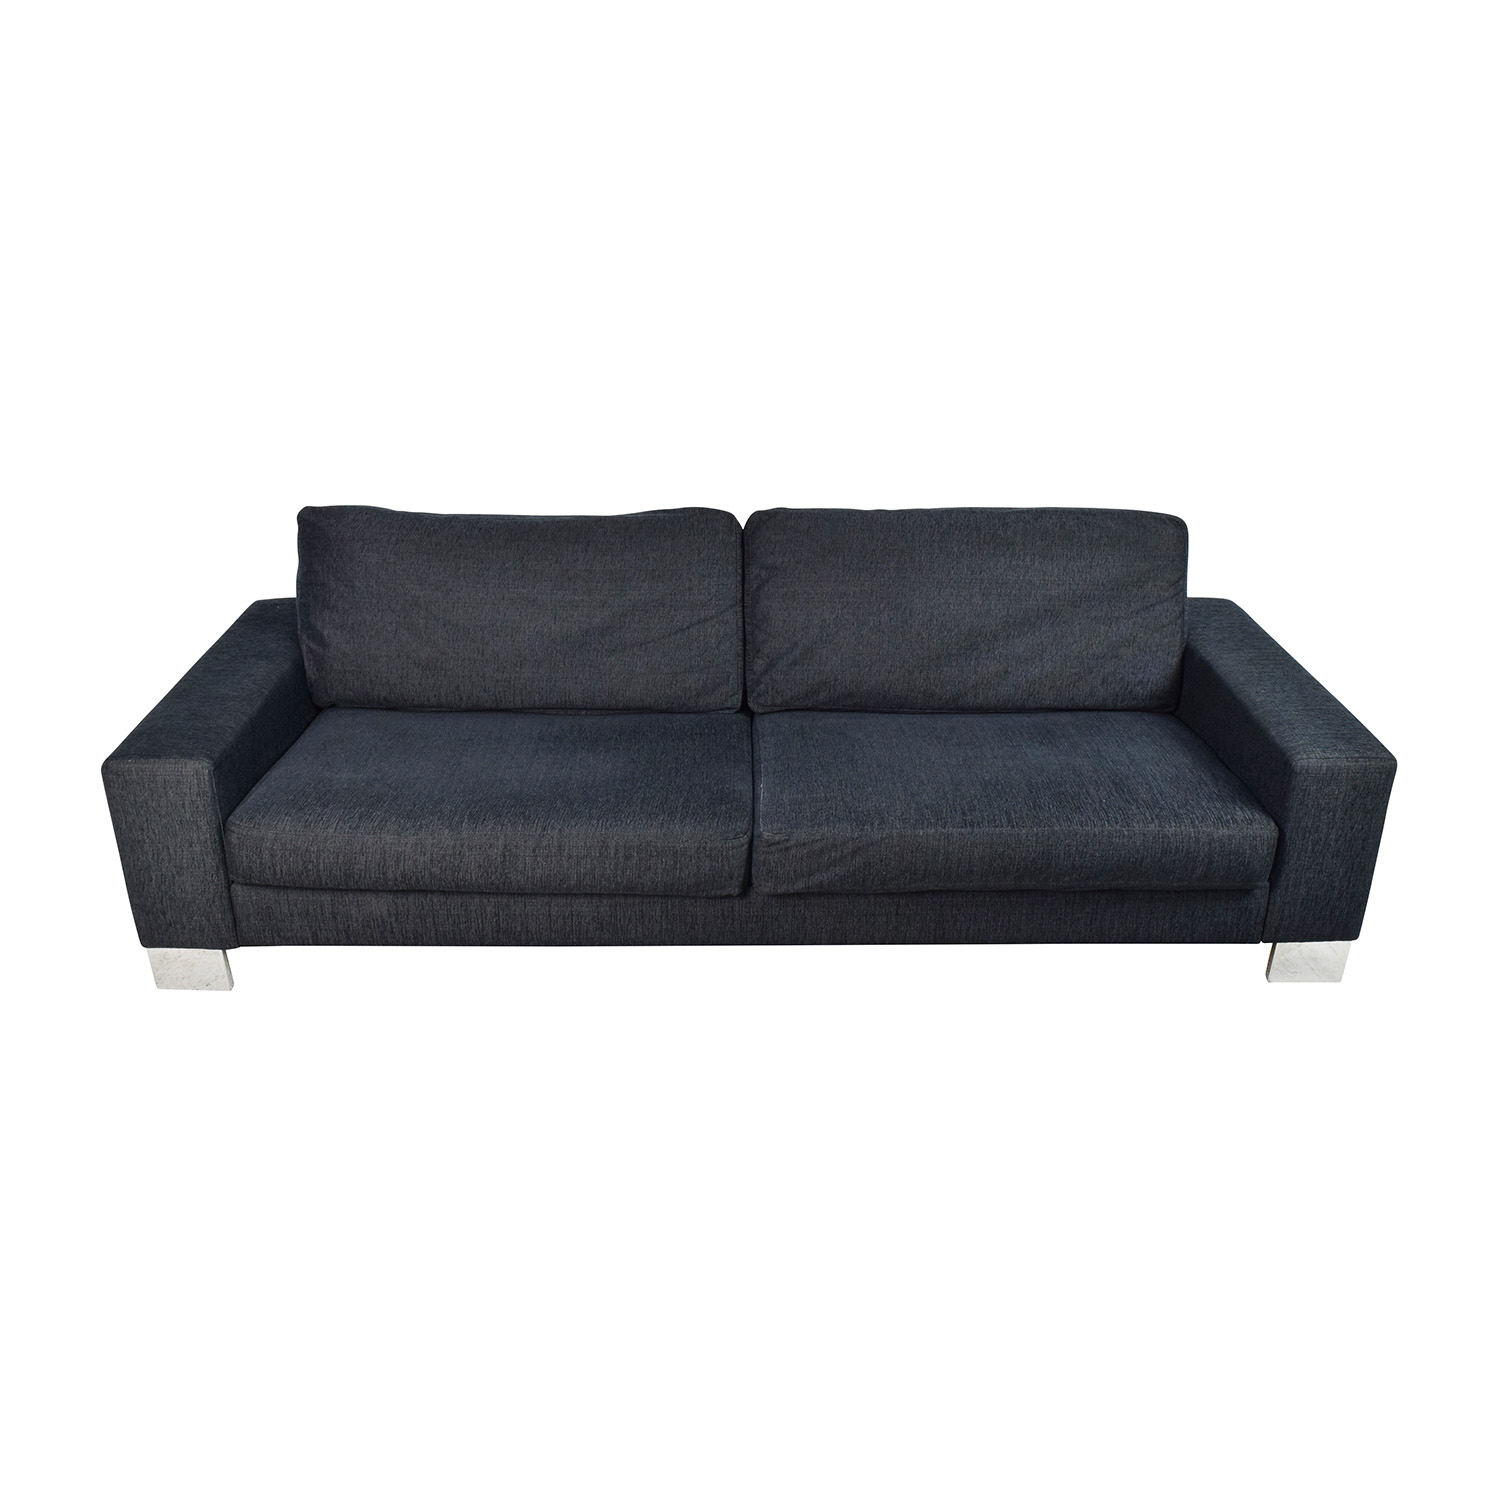 BoConcept BoConcept Cenova Dark Navy Sofa Dark Navy/Black